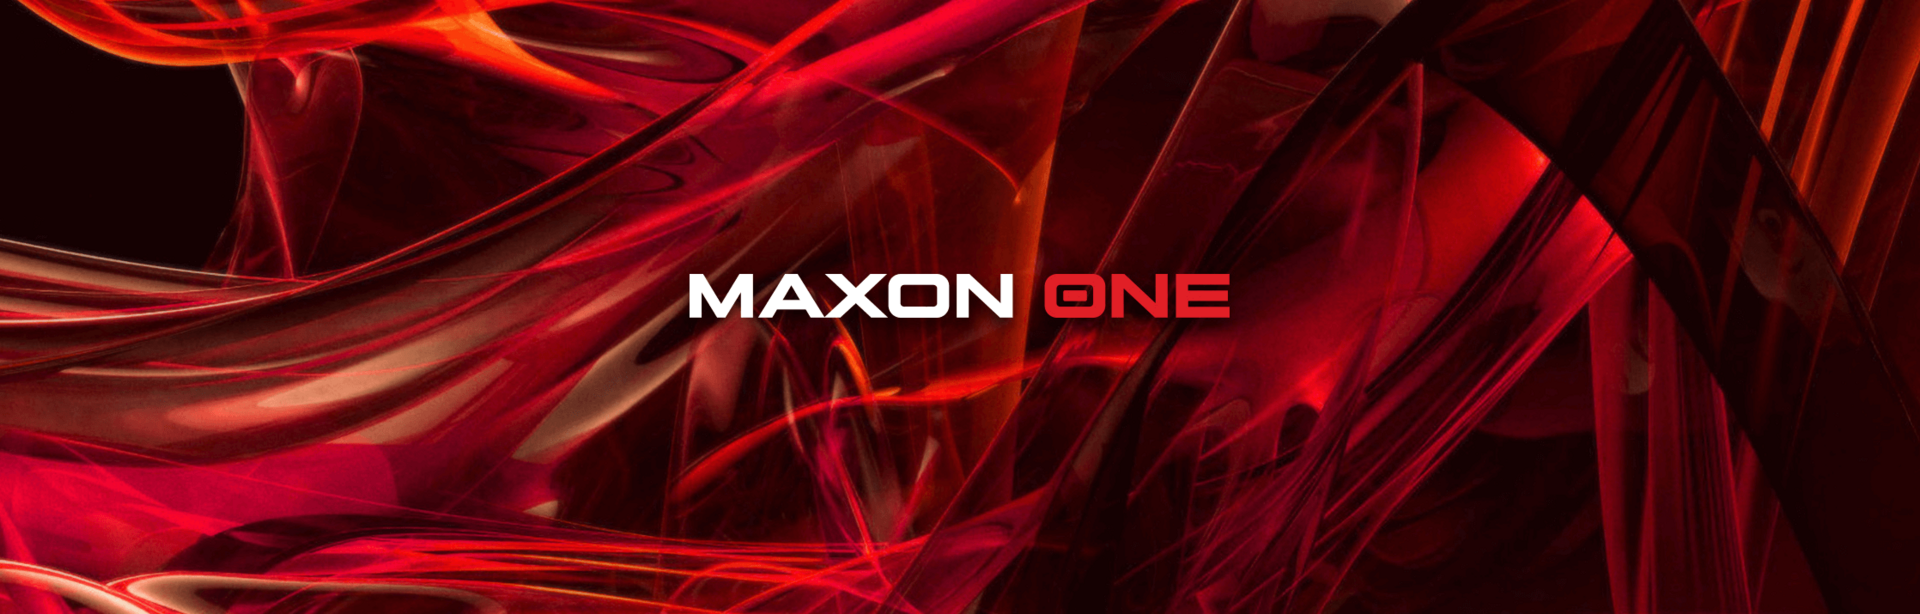 Maxon One Subscription (1 Year) - IRM Software Shop